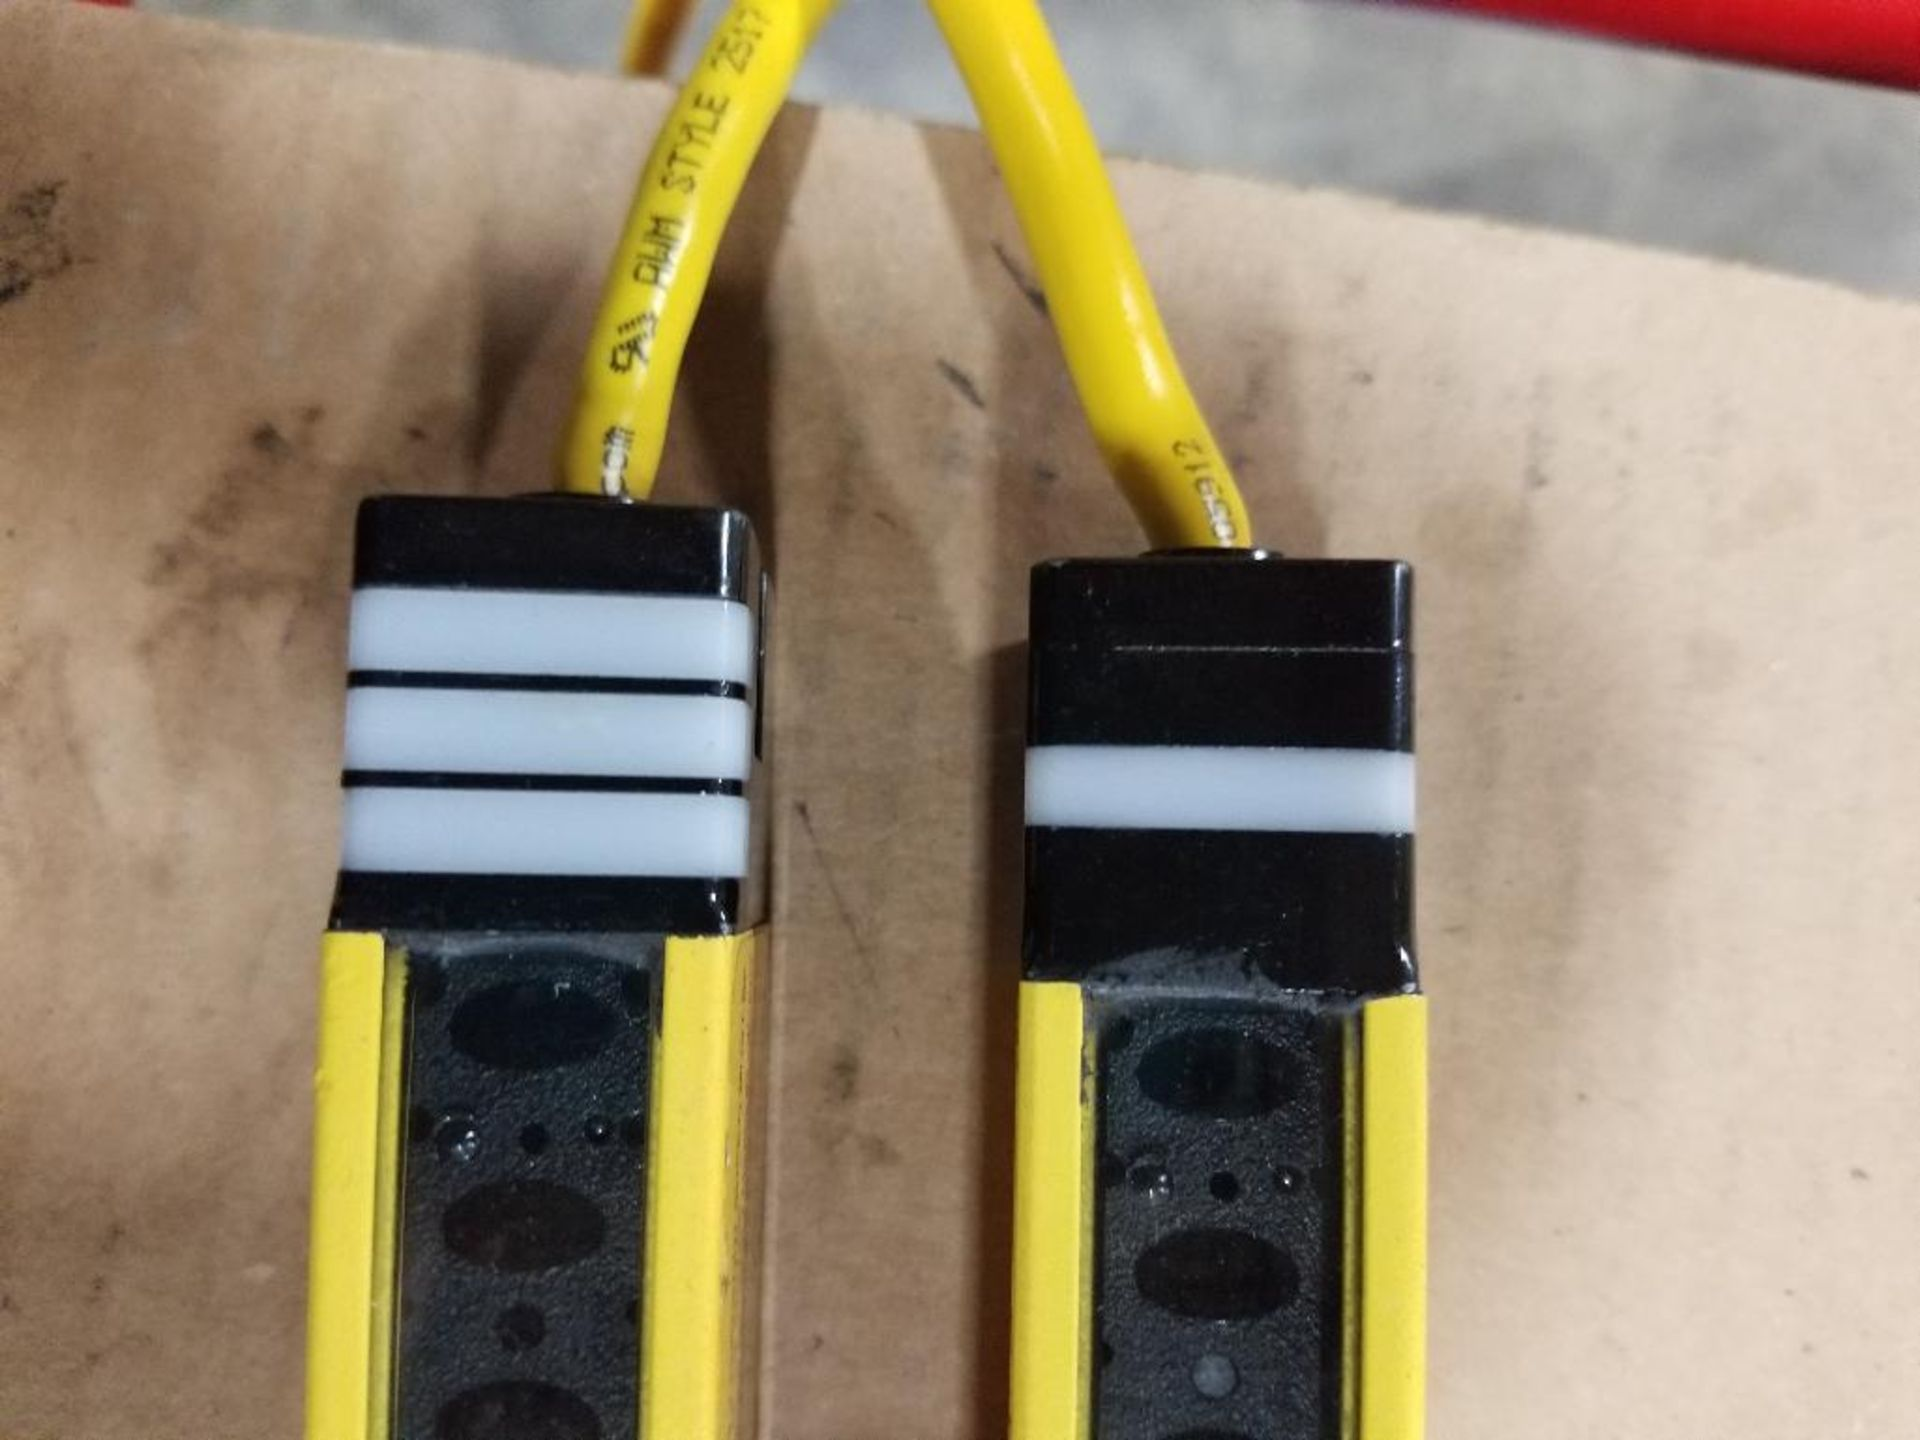 Banner Micro-Screen Light curtain transmitter / receiver set. USR3624YP2, USE3624YP2. - Image 5 of 5